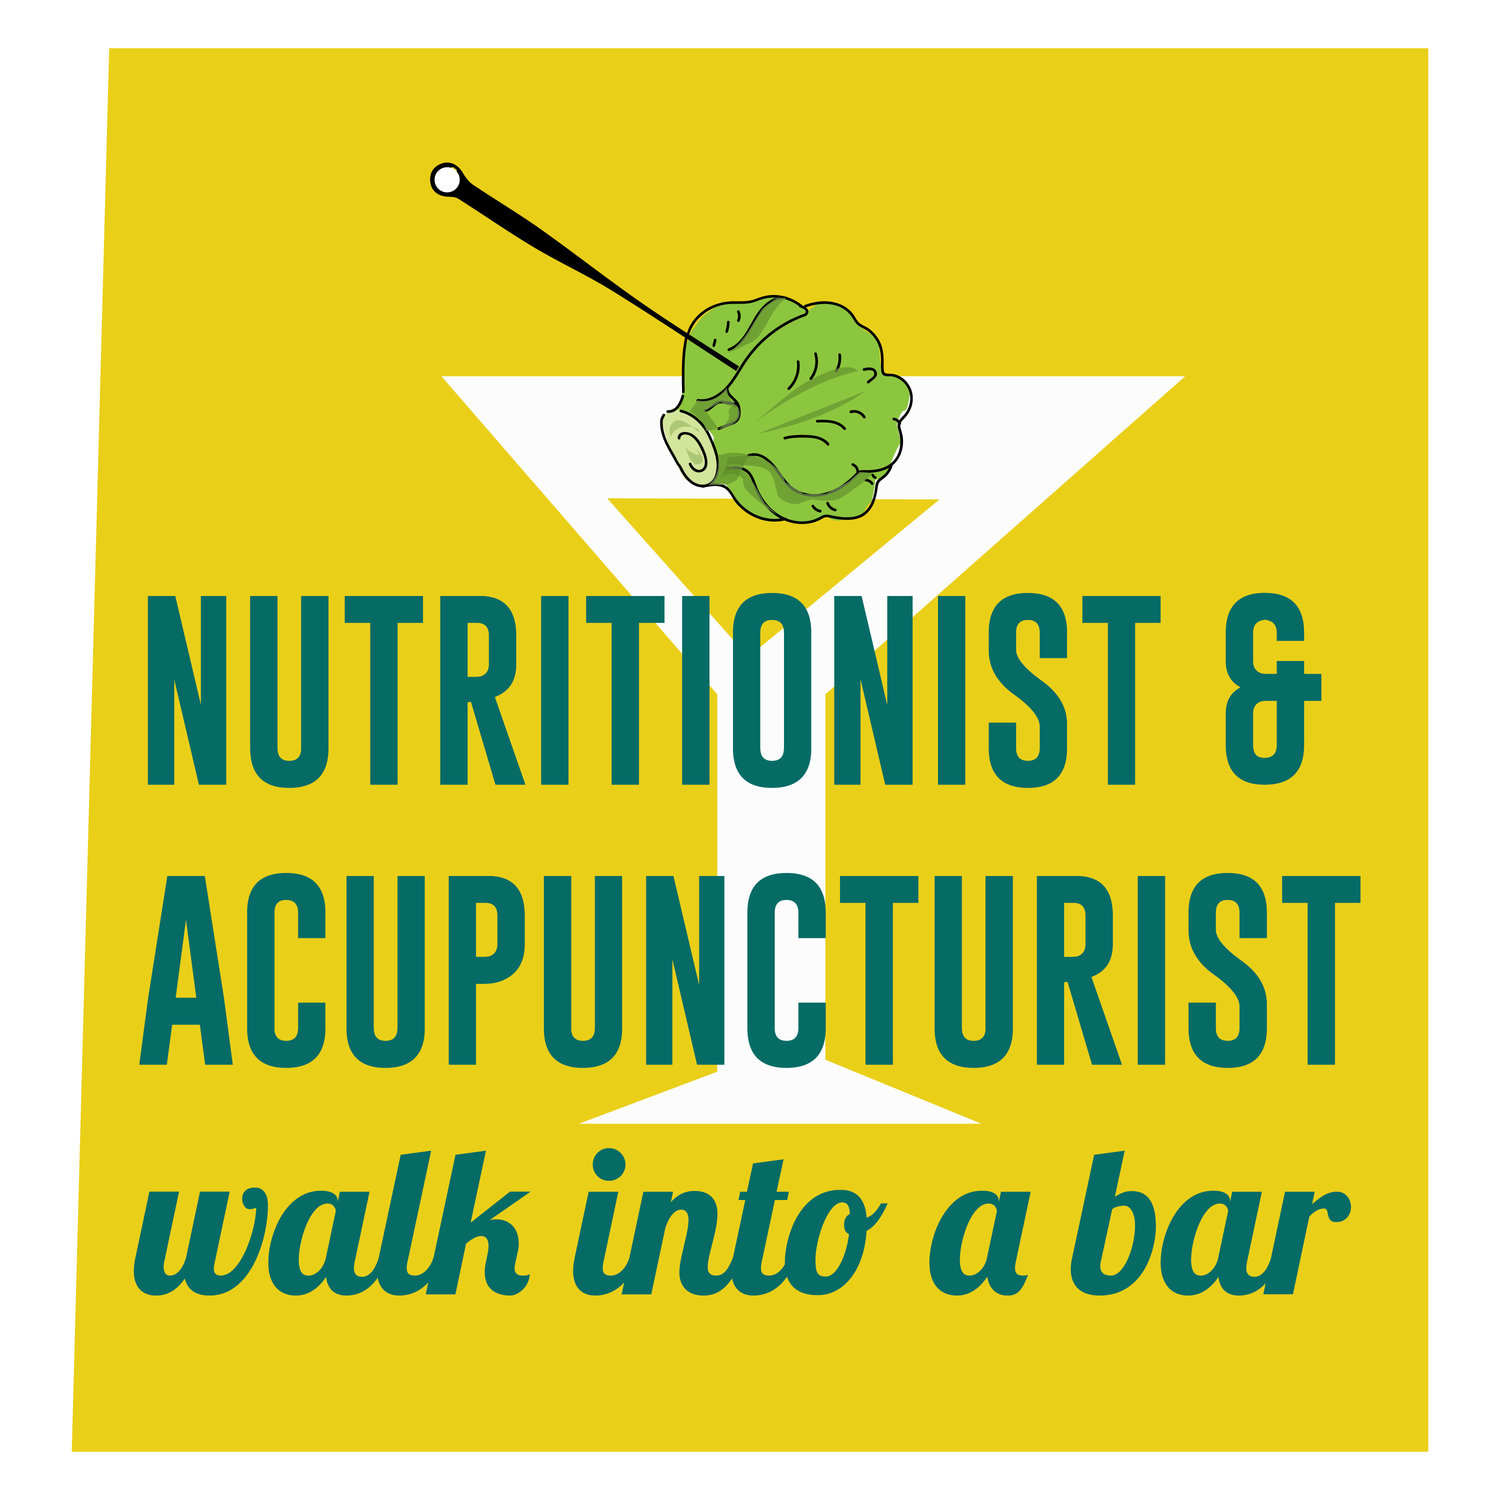 Nutritionist & Acupuncturist Walk Into A Bar